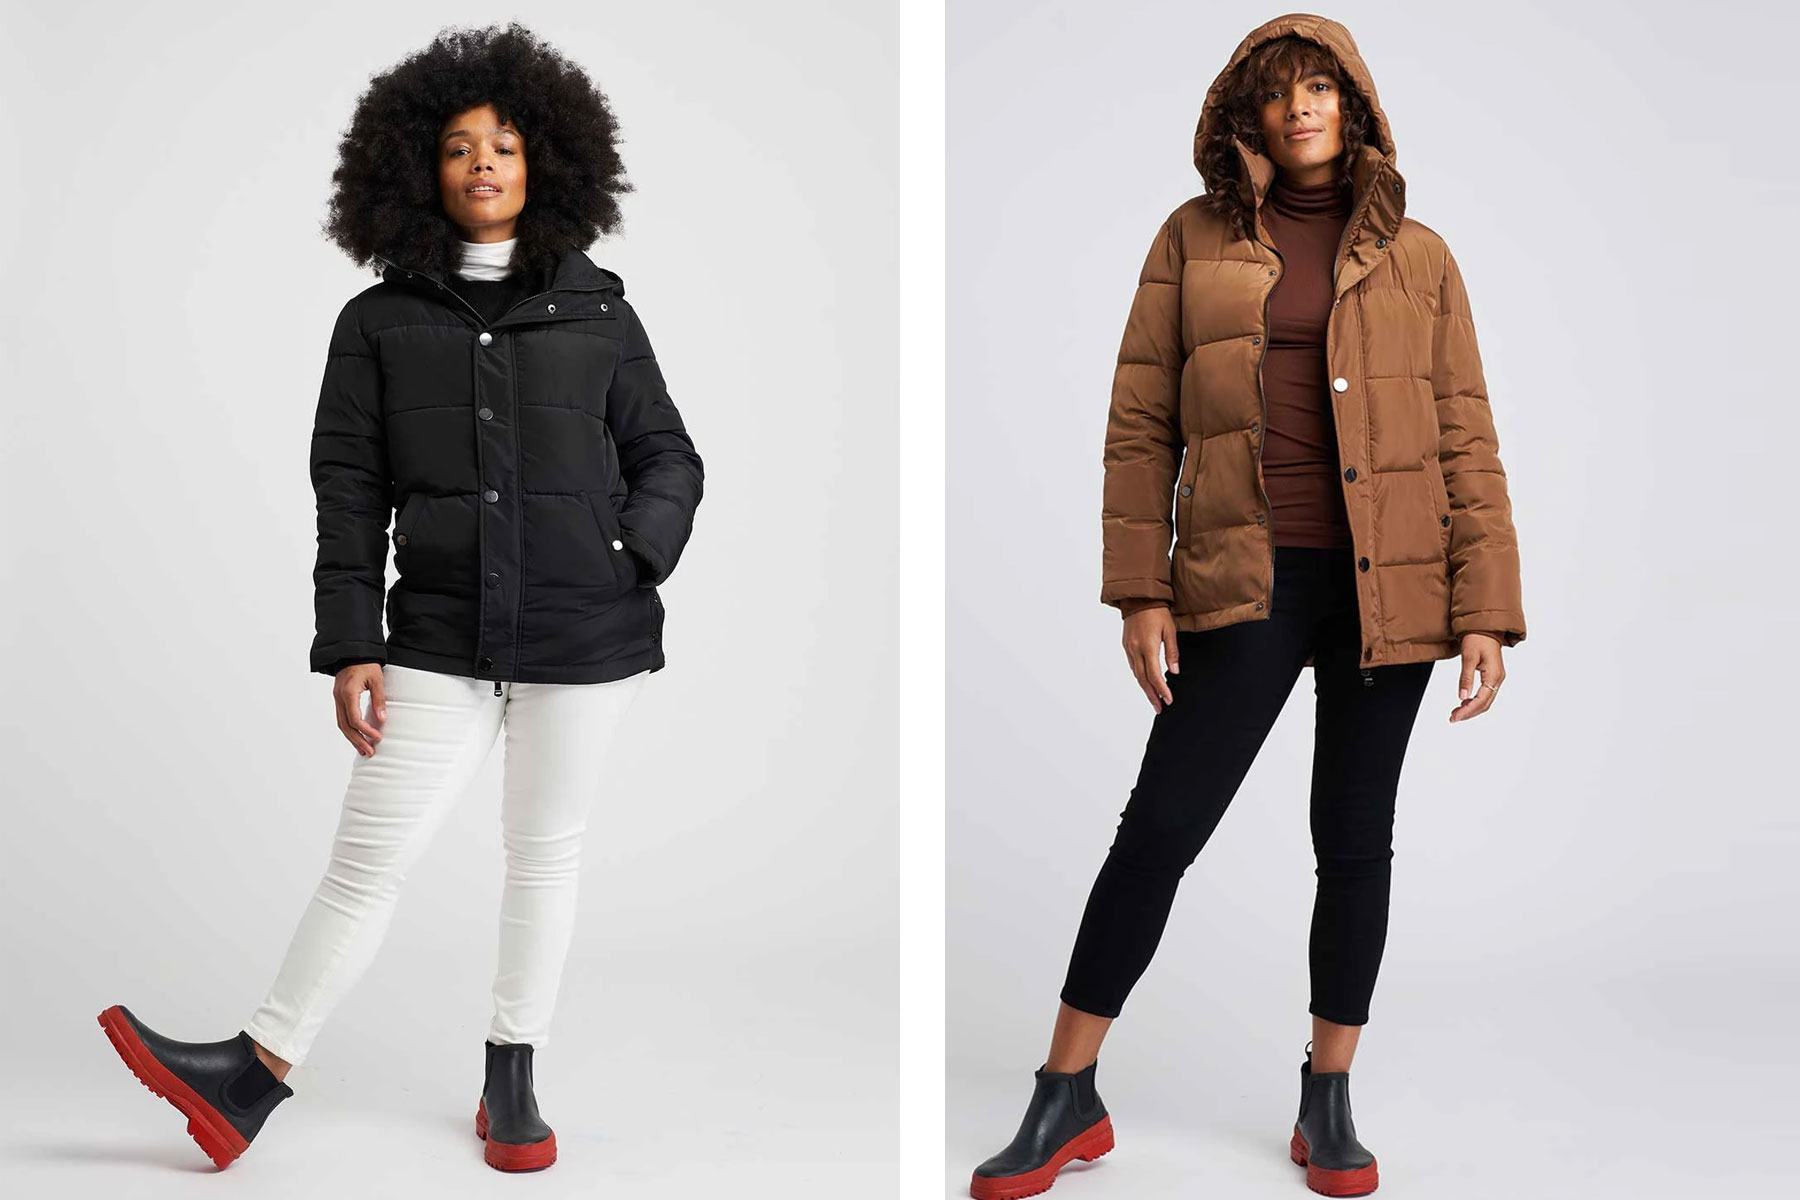 Women wearing black and brown puffer coats